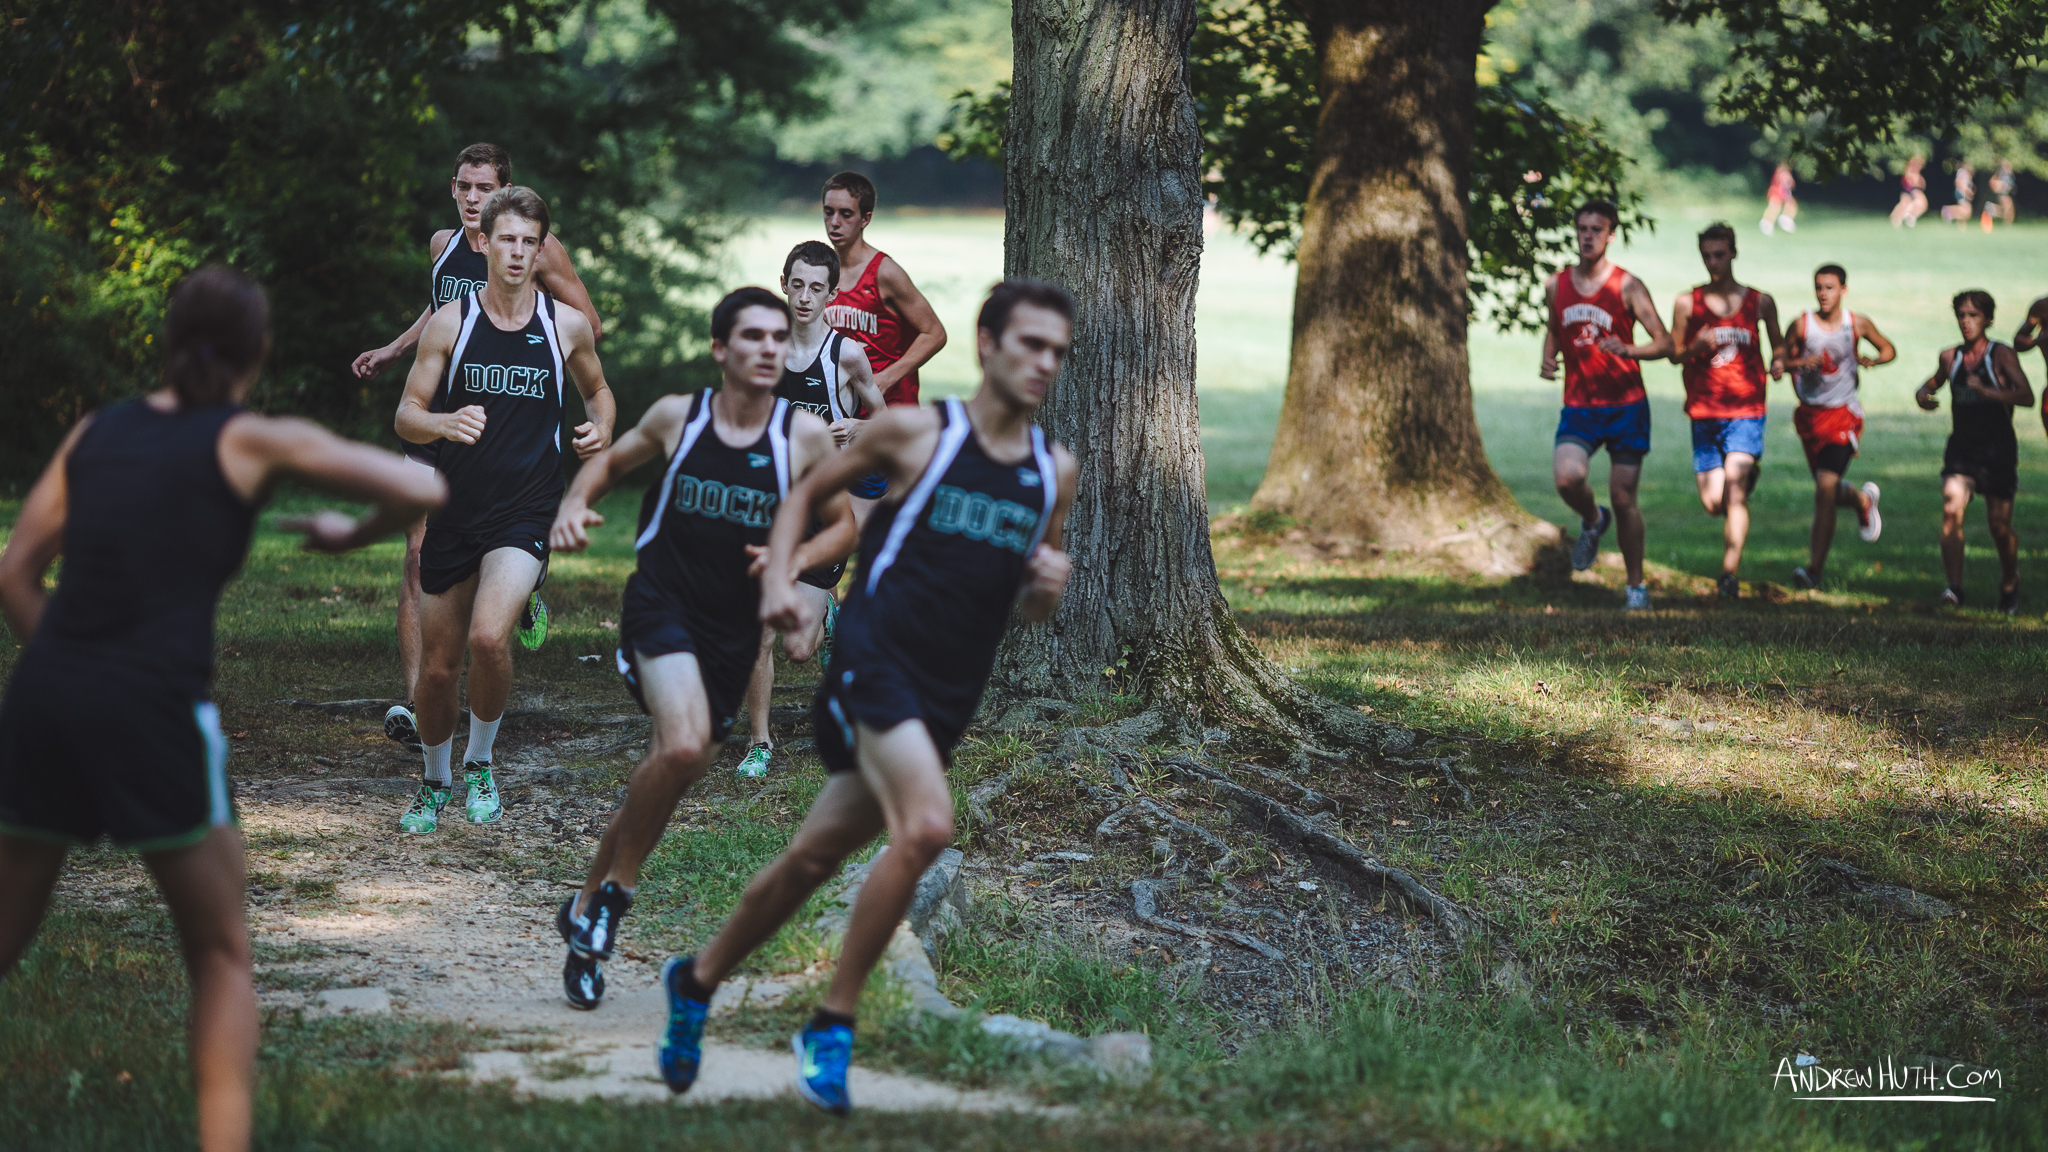 andrew_huth_cd_xcountry_jank_003.jpg